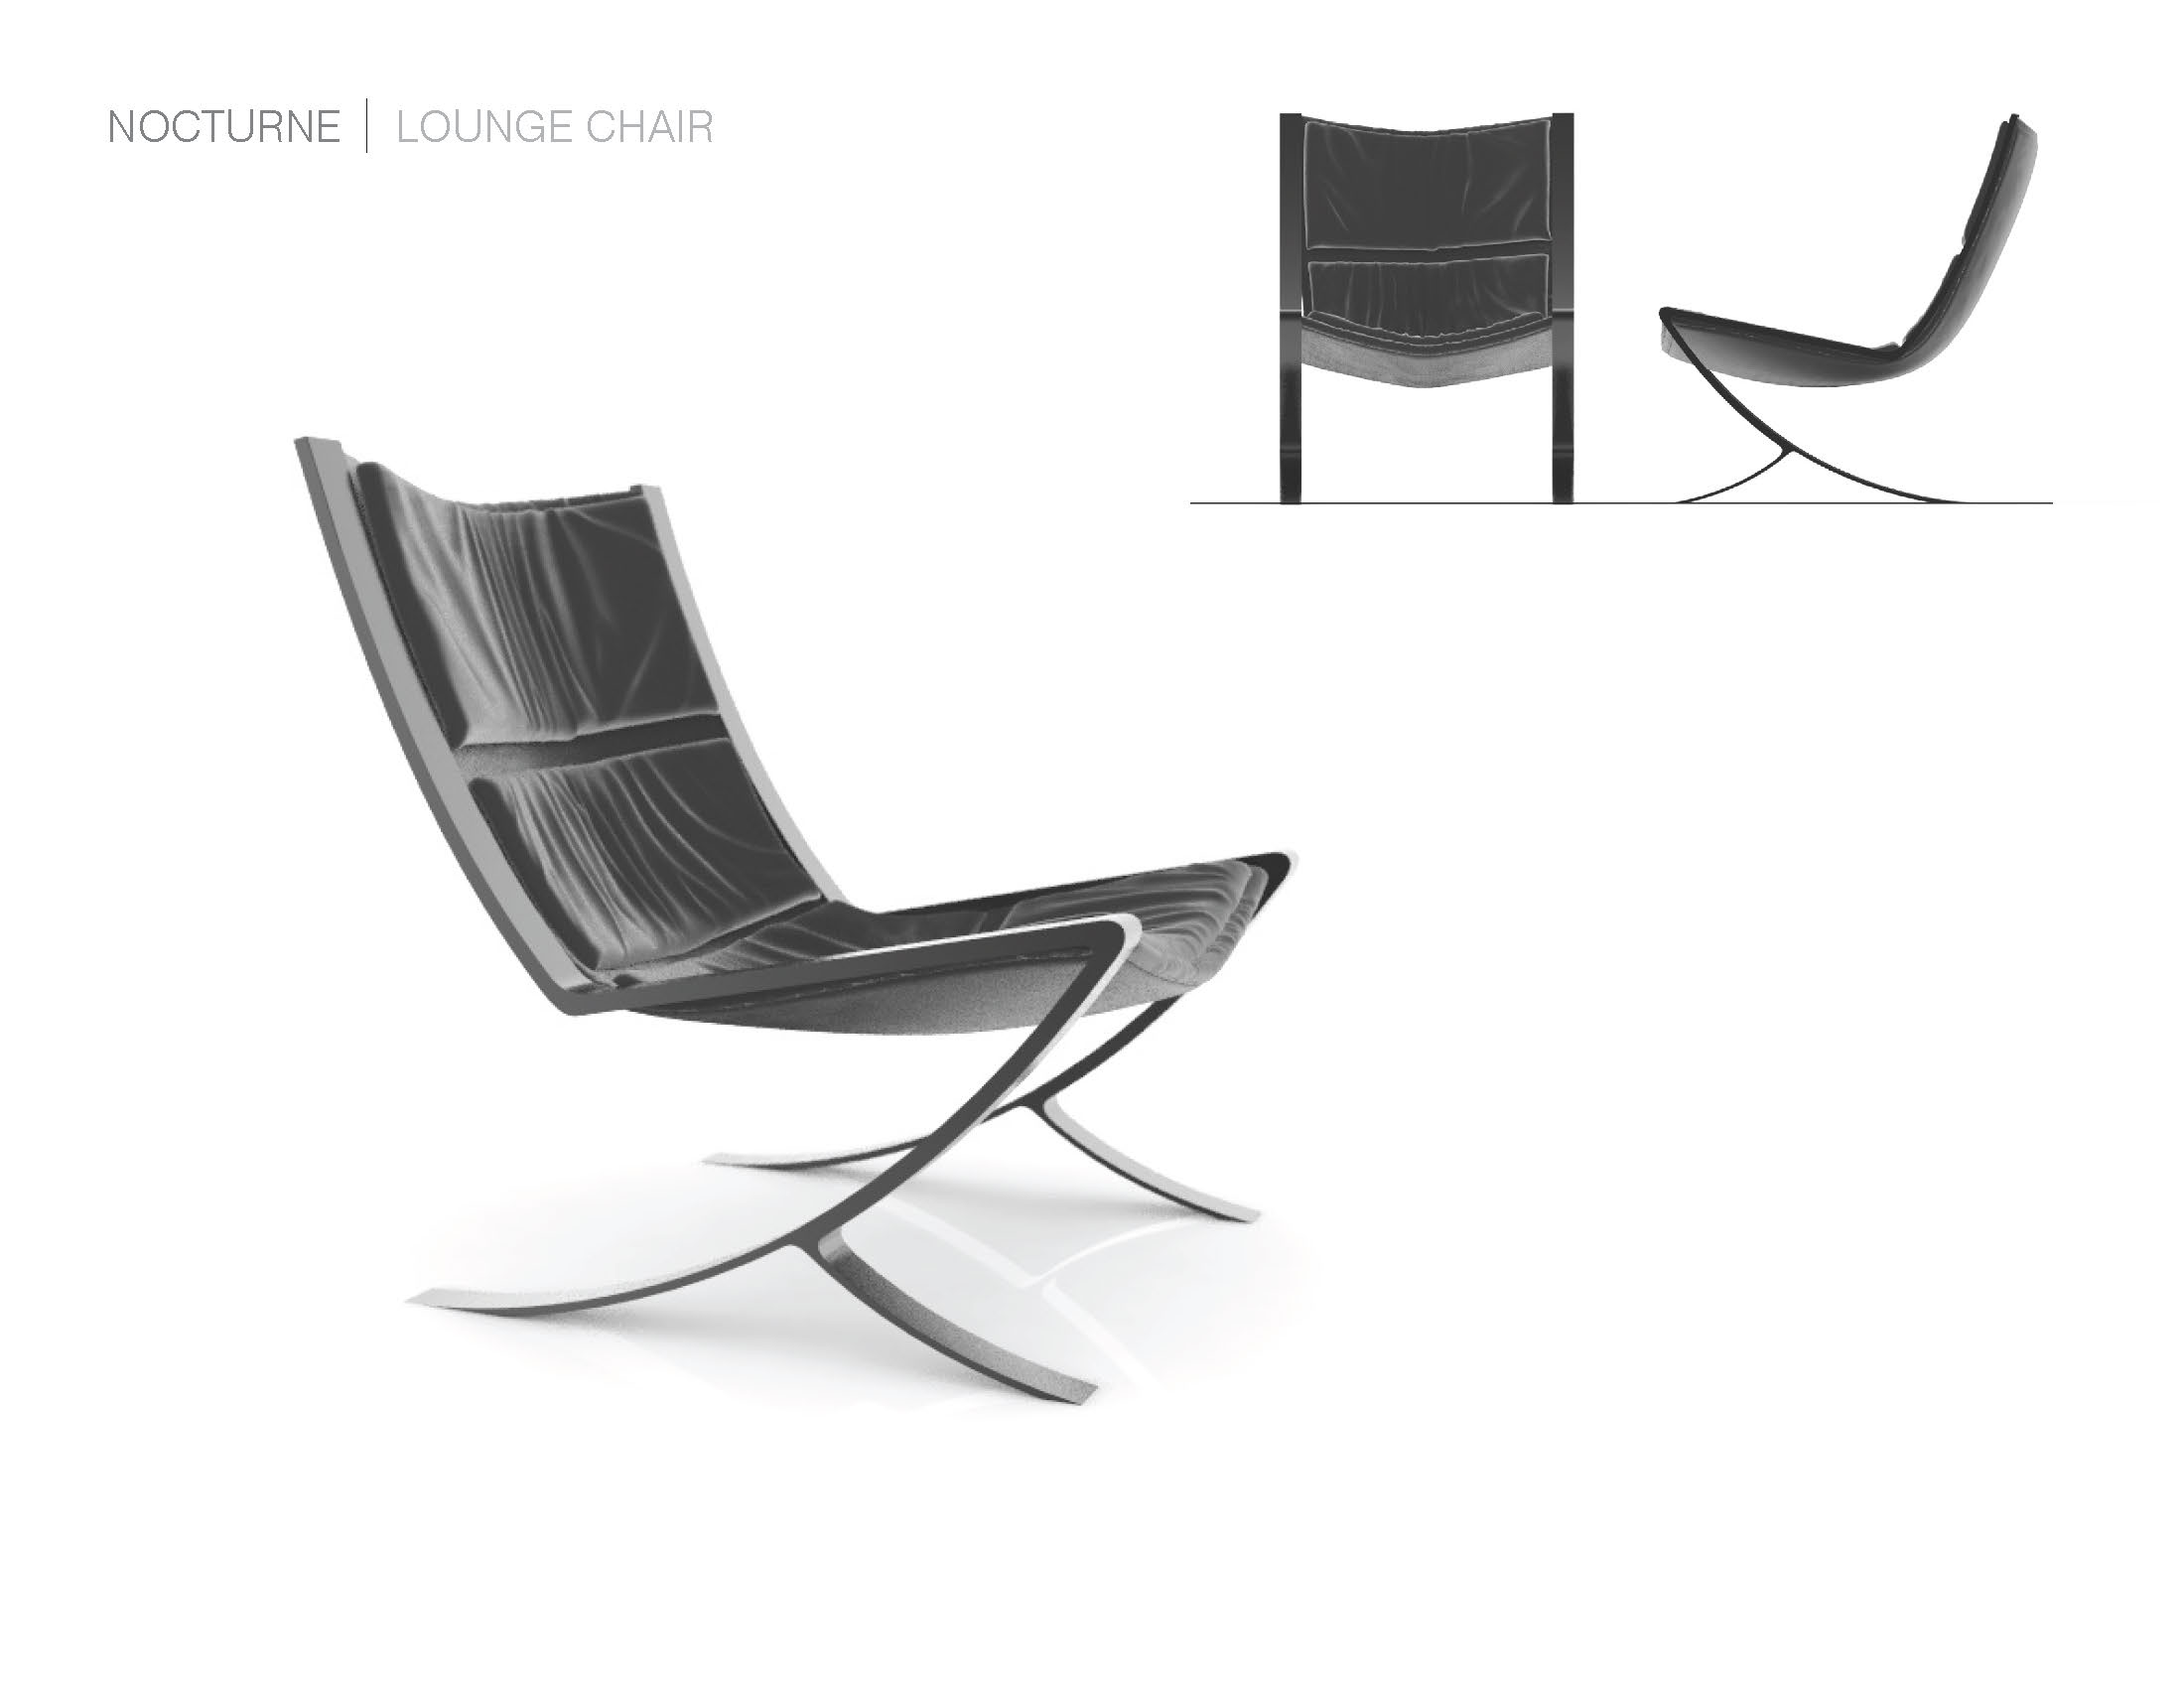 Nocture Lounge Chair by Heather Seto